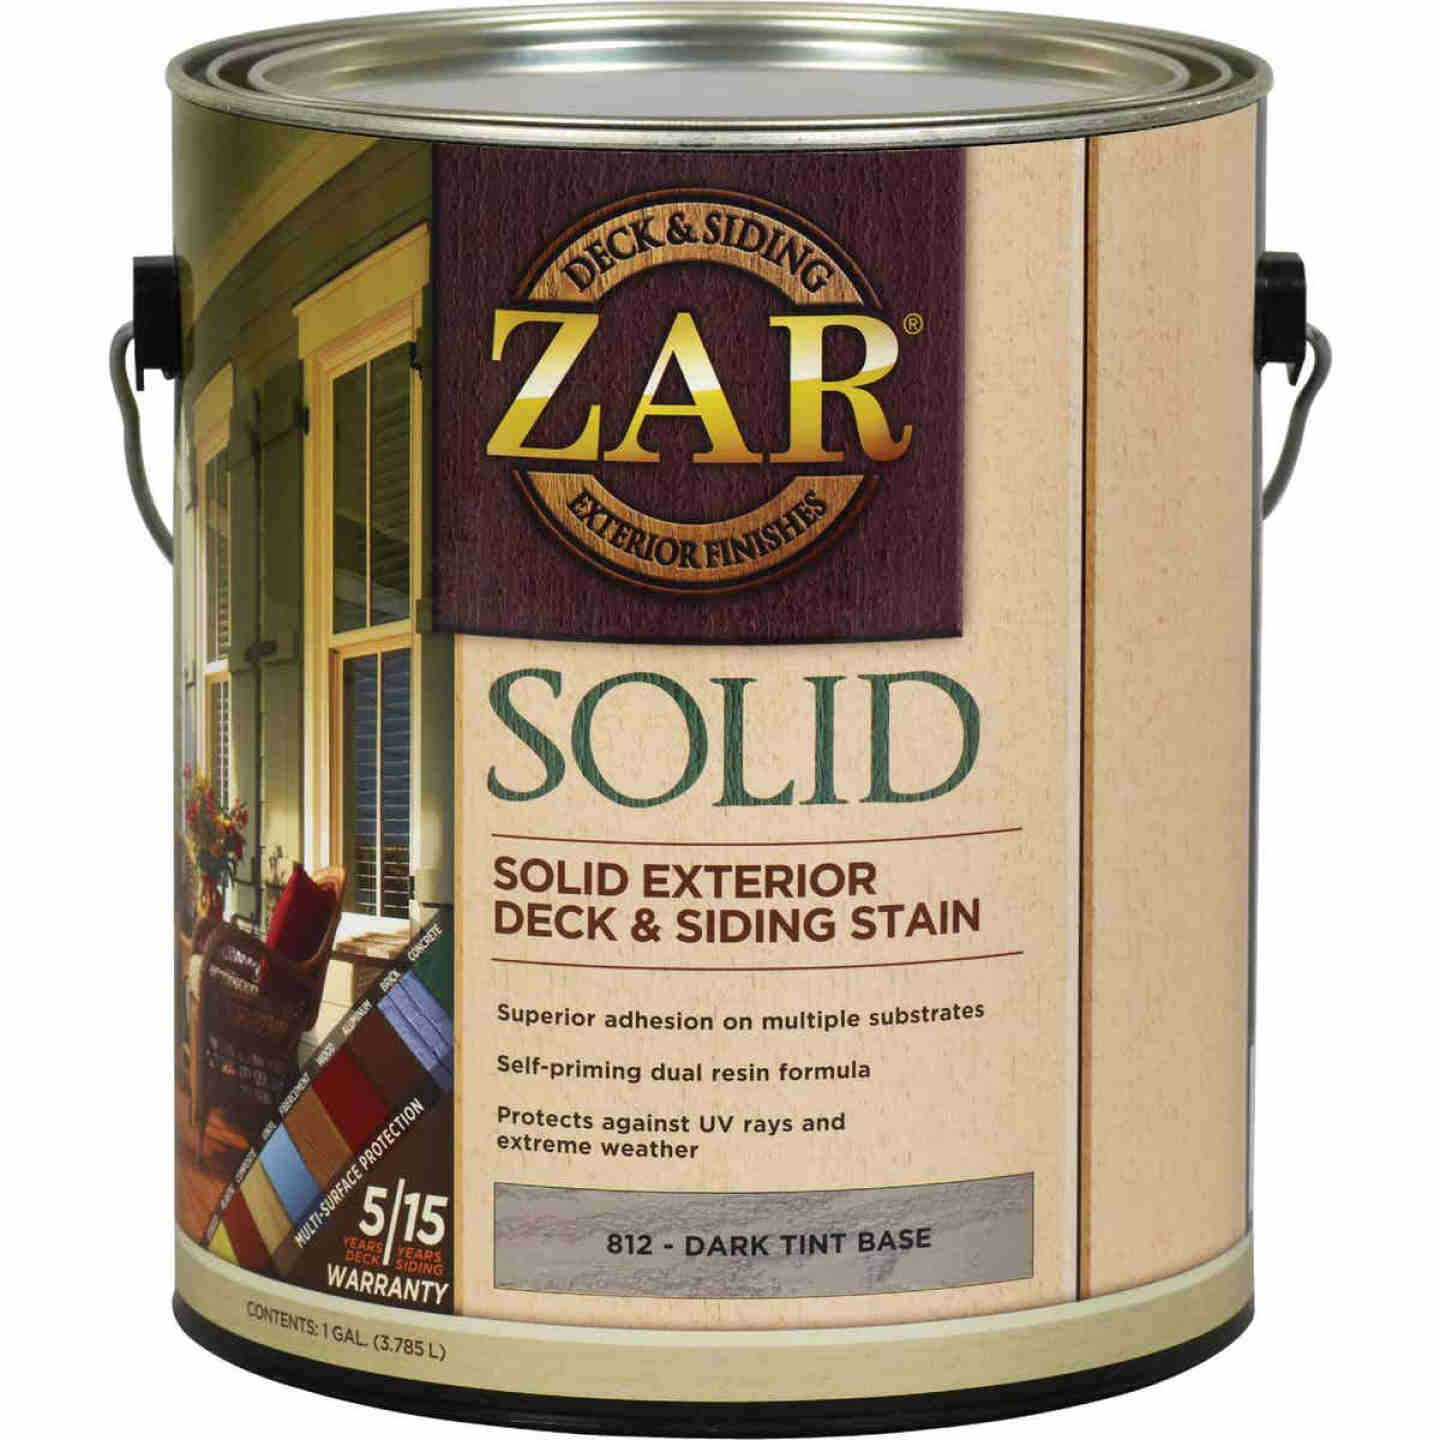 ZAR Solid Deck & Siding Stain, Dark Tint Base, 1 Gal. Image 1